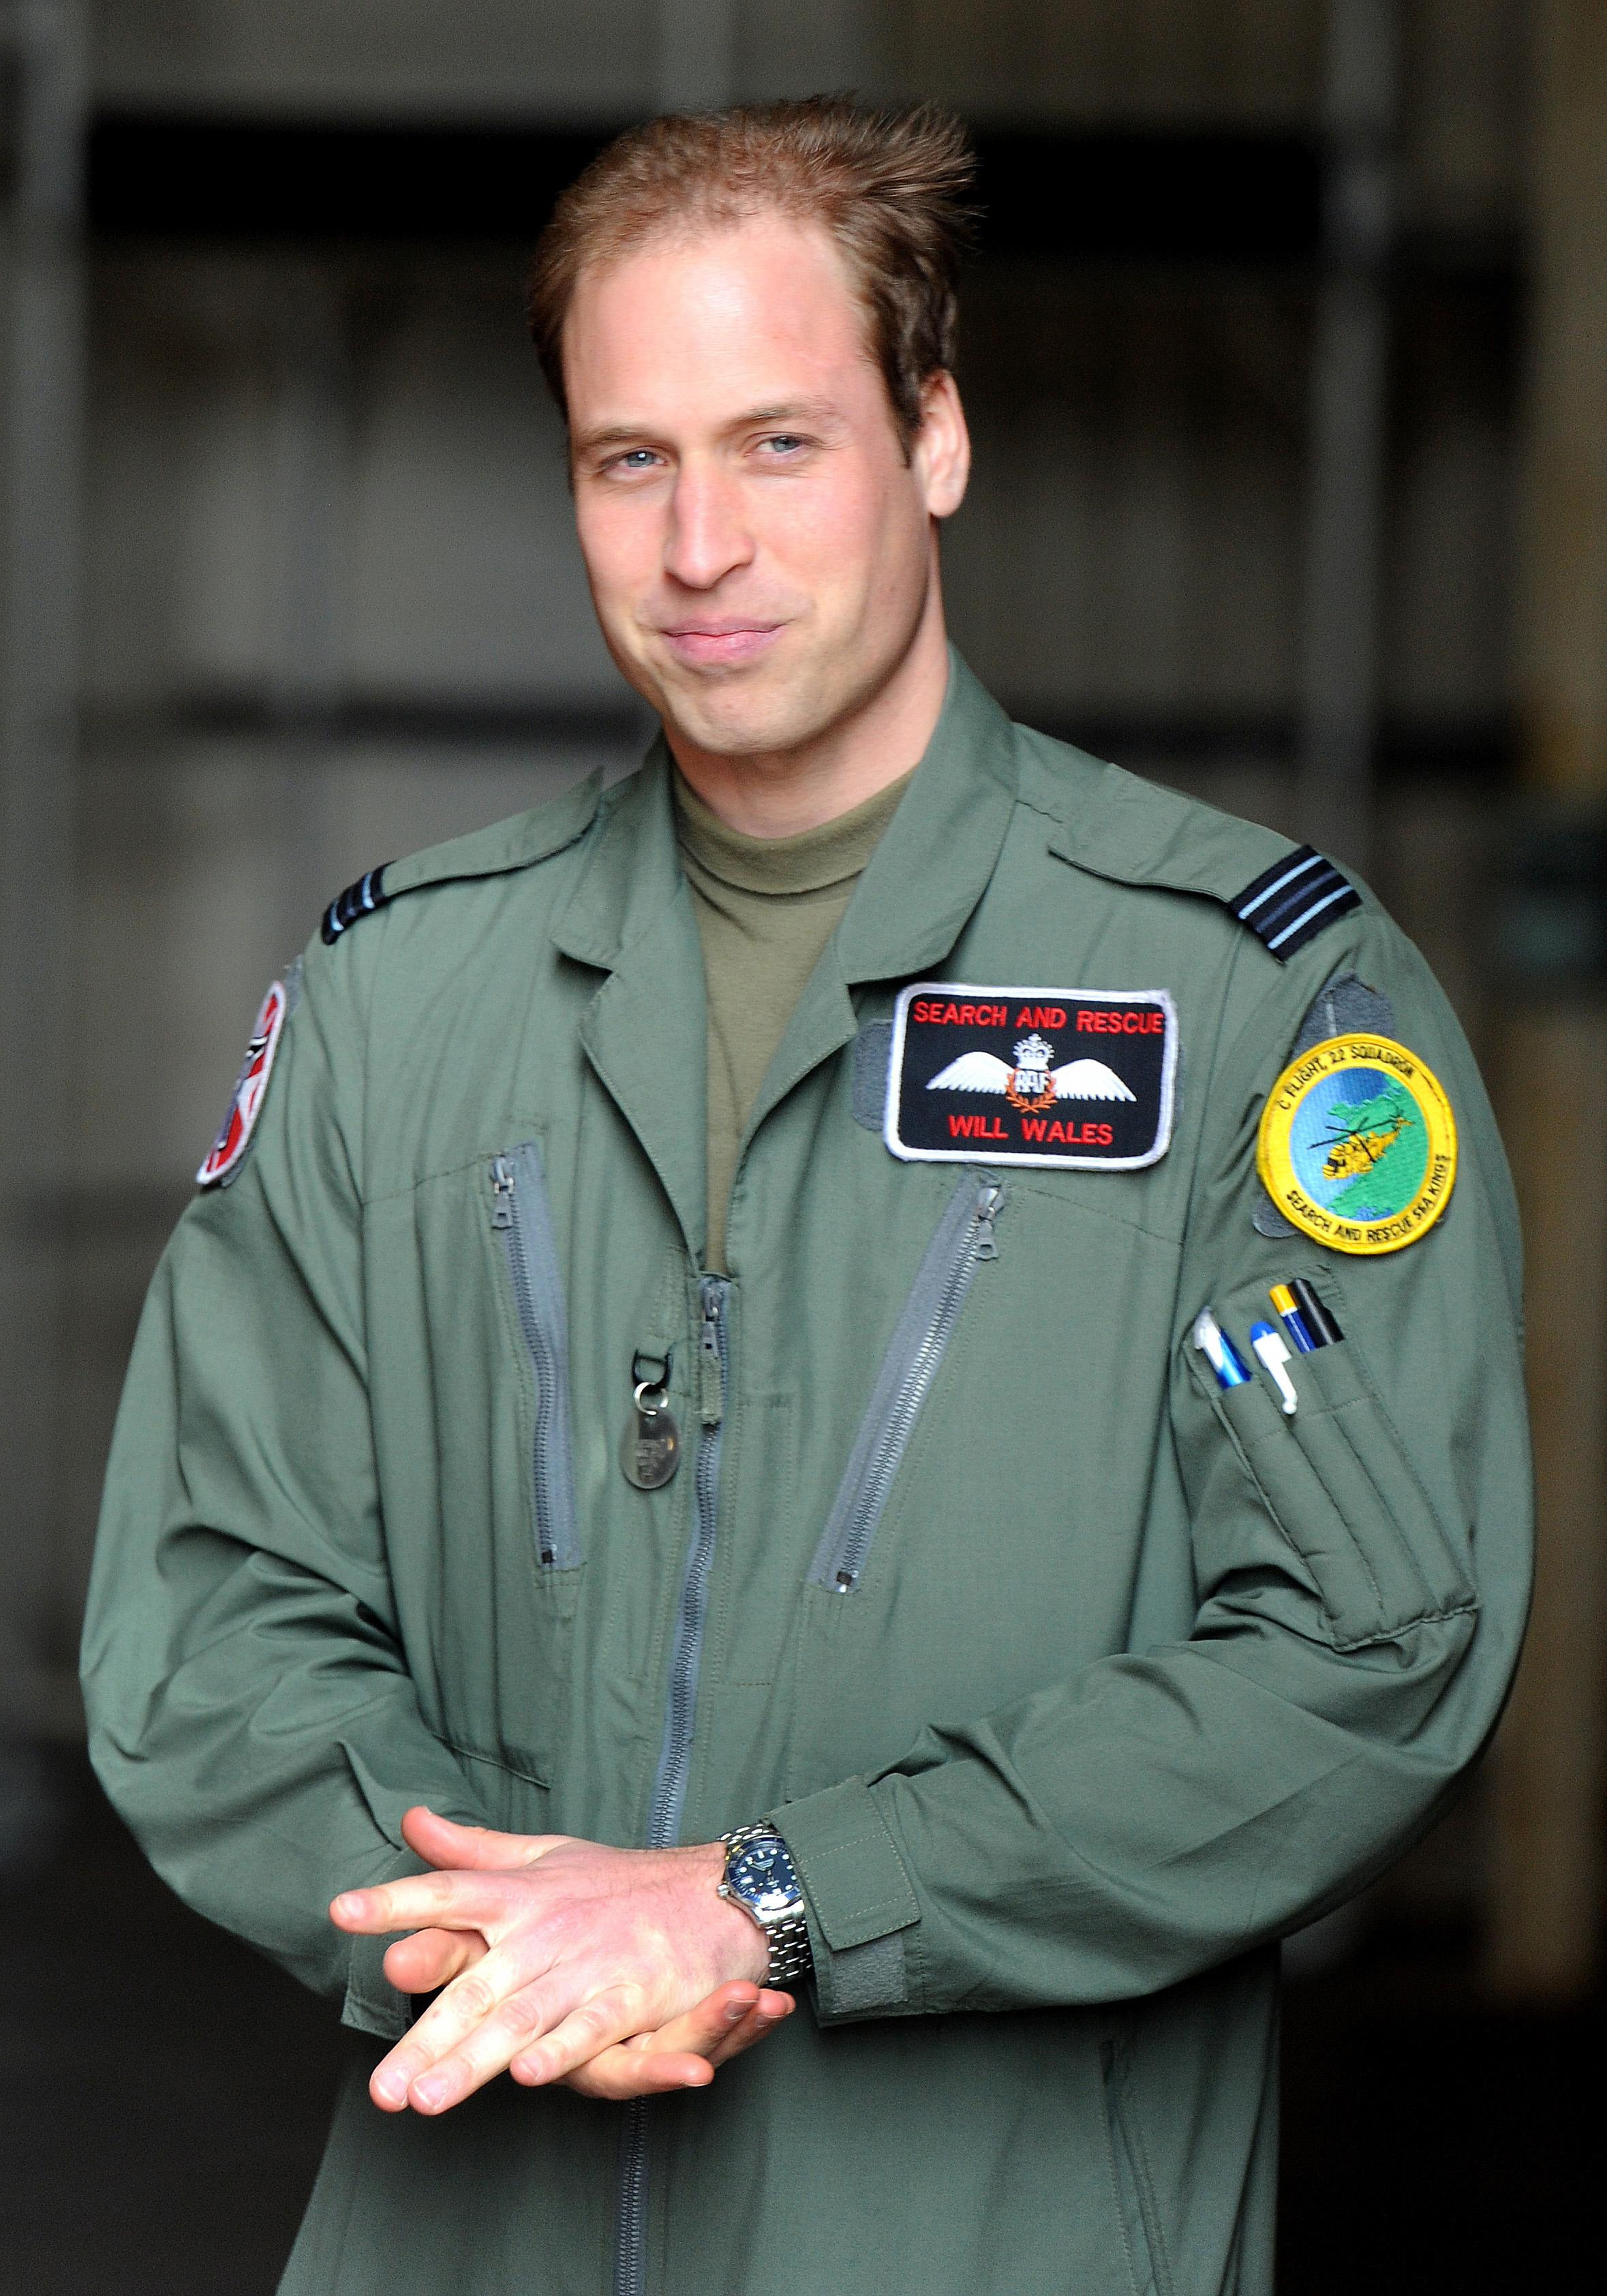 William standing in a helicopter hanger after saying goodbye to Britain's Queen Elizabeth II and the Duke of Edinburgh during a visit to RAF Valley in Anglesey in April 2011 (John Stillwell/PA)